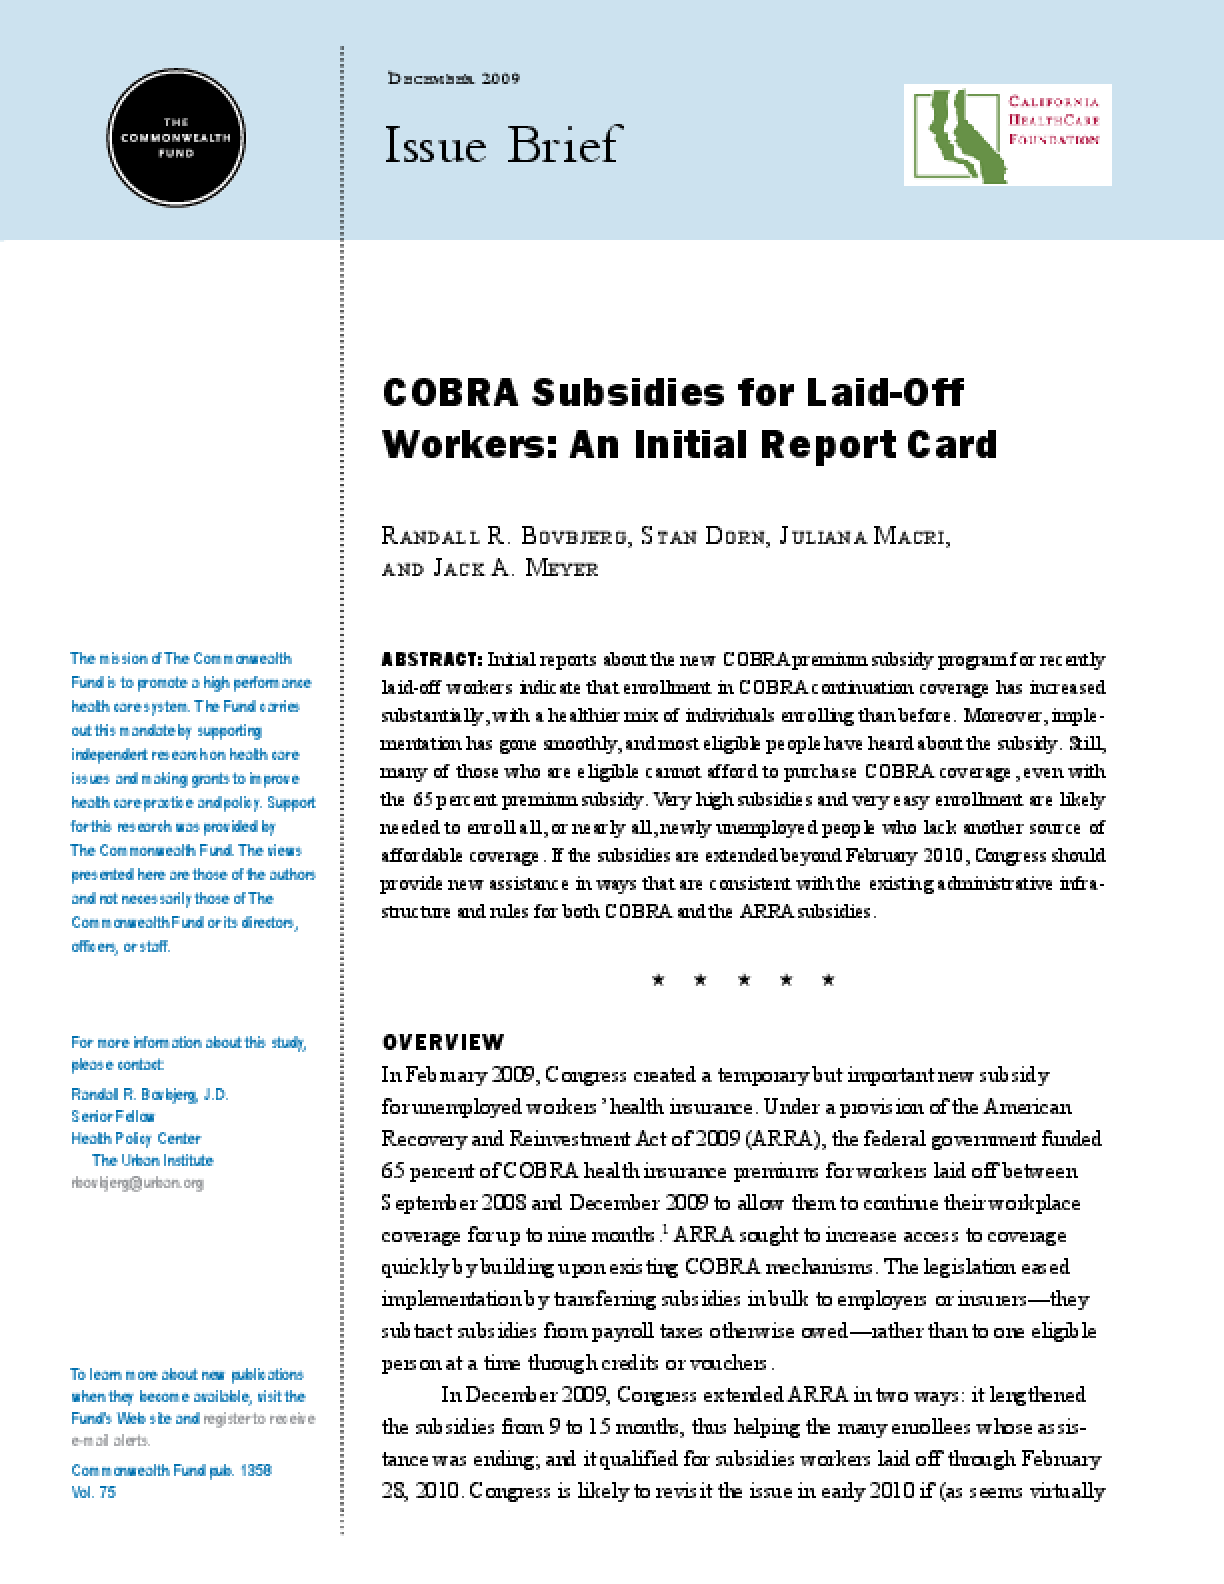 COBRA Subsidies for Laid-Off Workers: An Initial Report Card